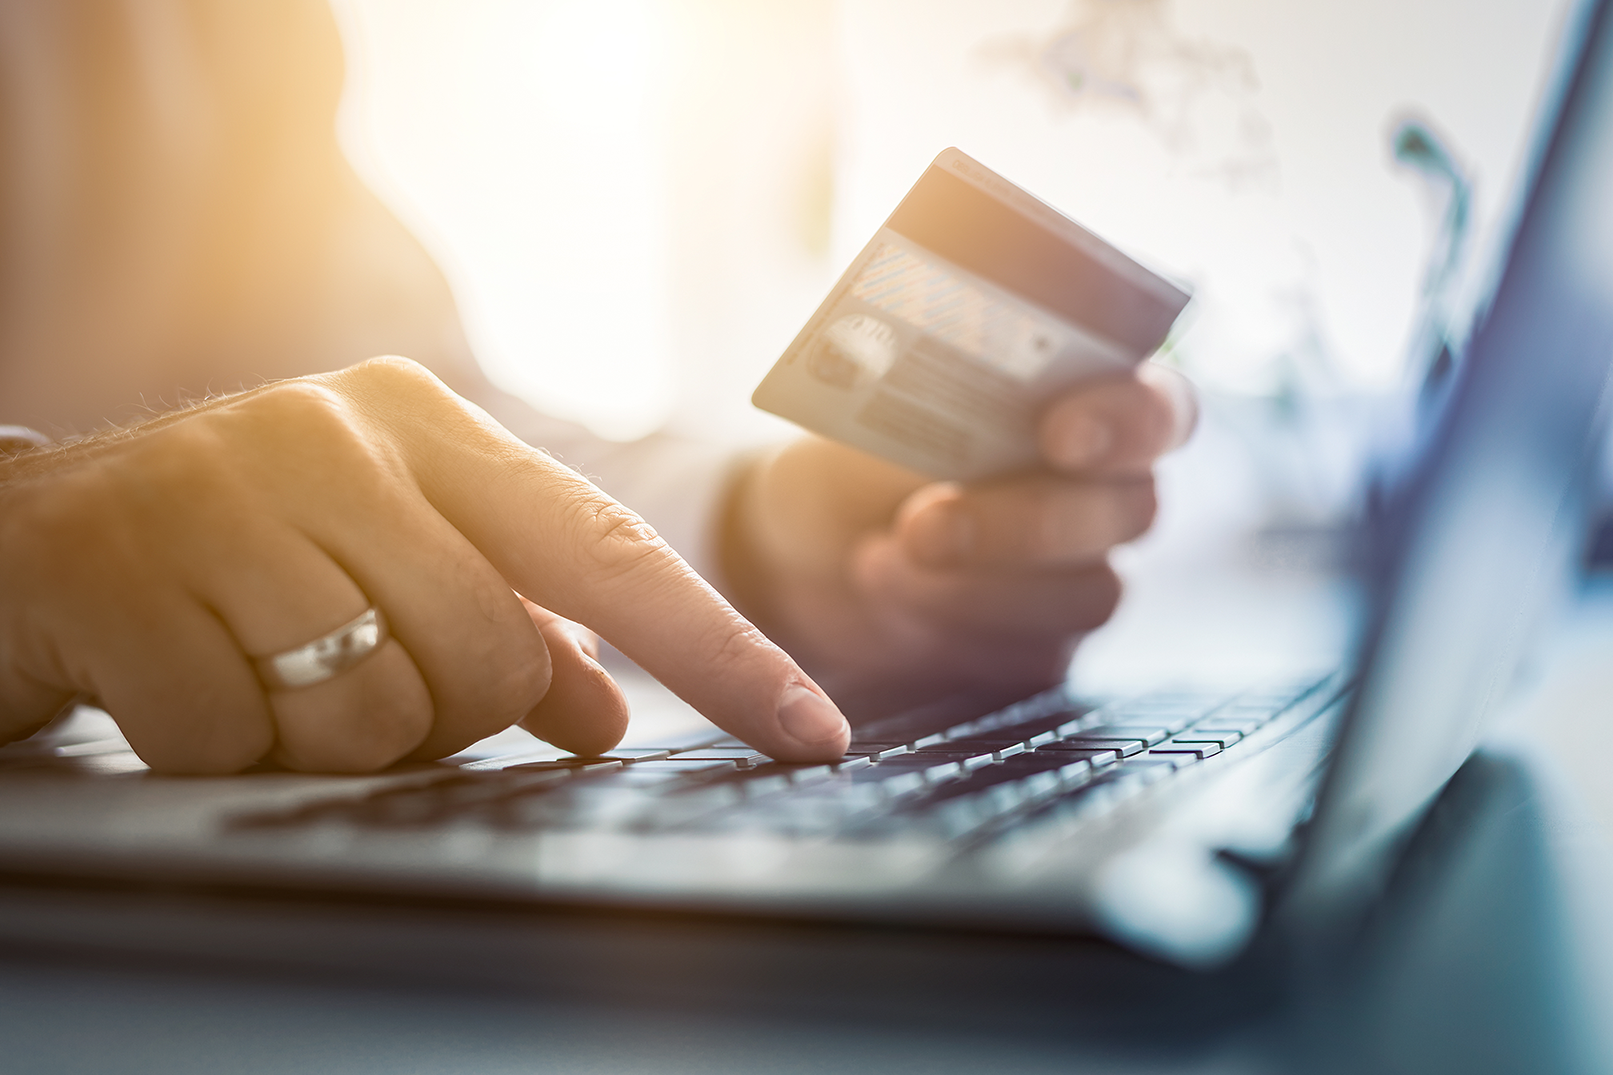 An image of a consumer using his credit card to buy online